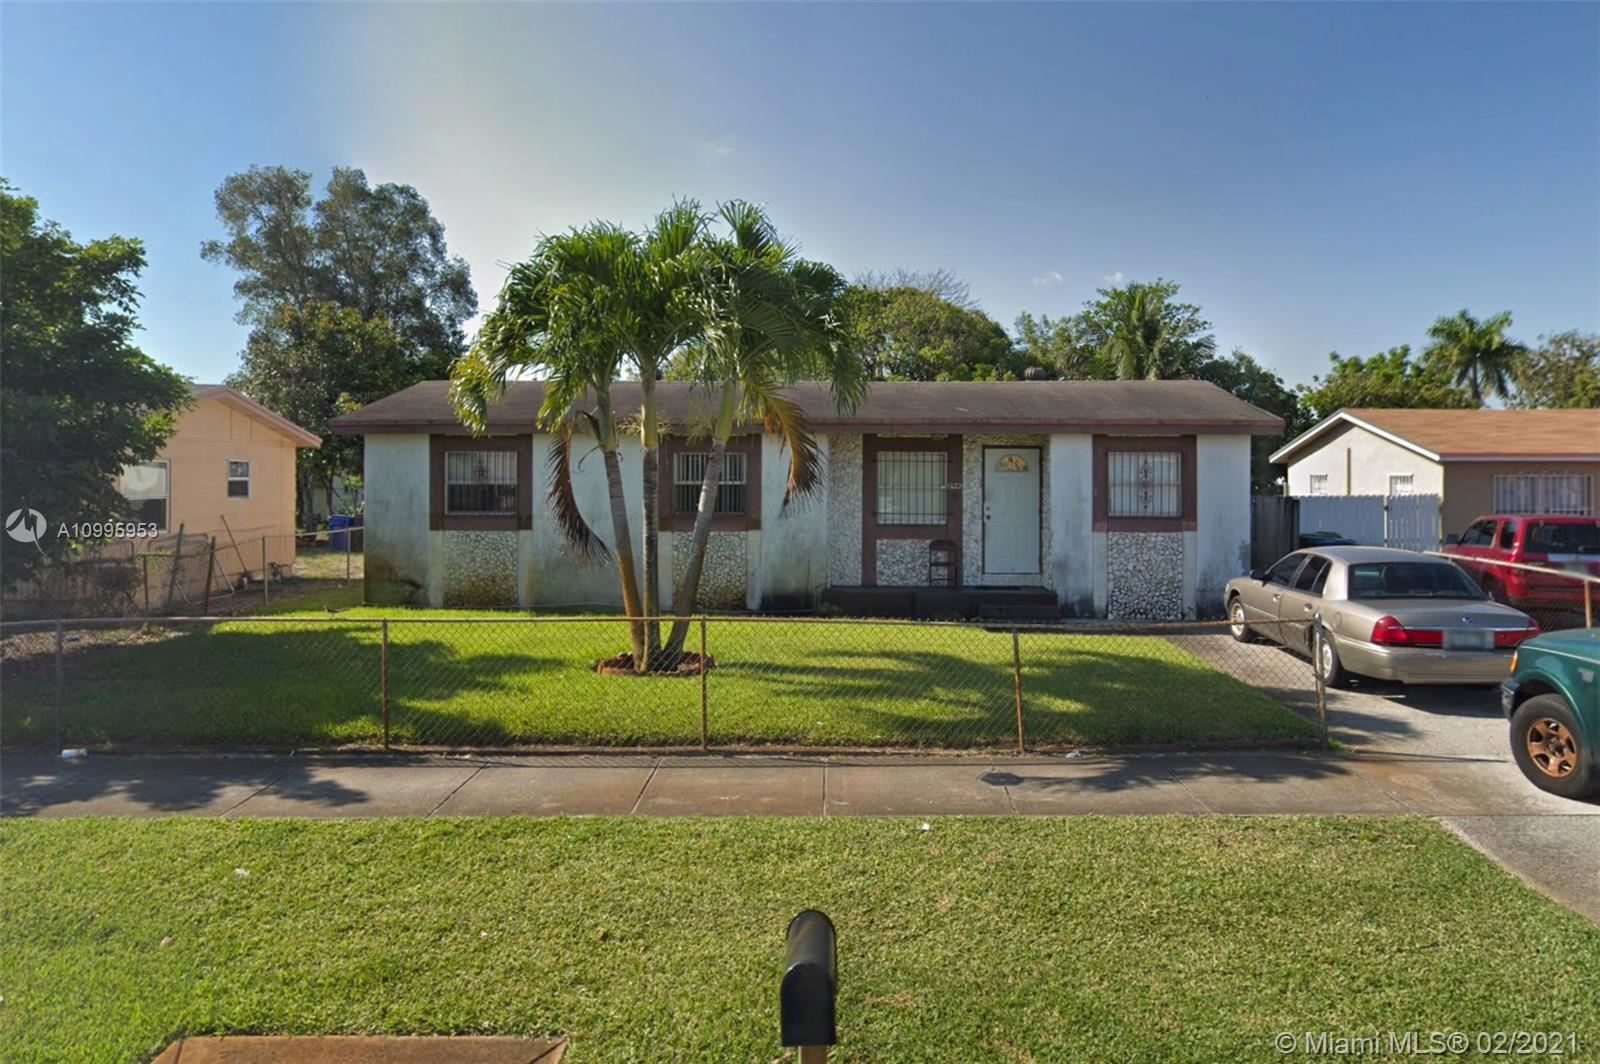 2940 NW 26th St, Fort Lauderdale, FL 33311 - #: A10995953